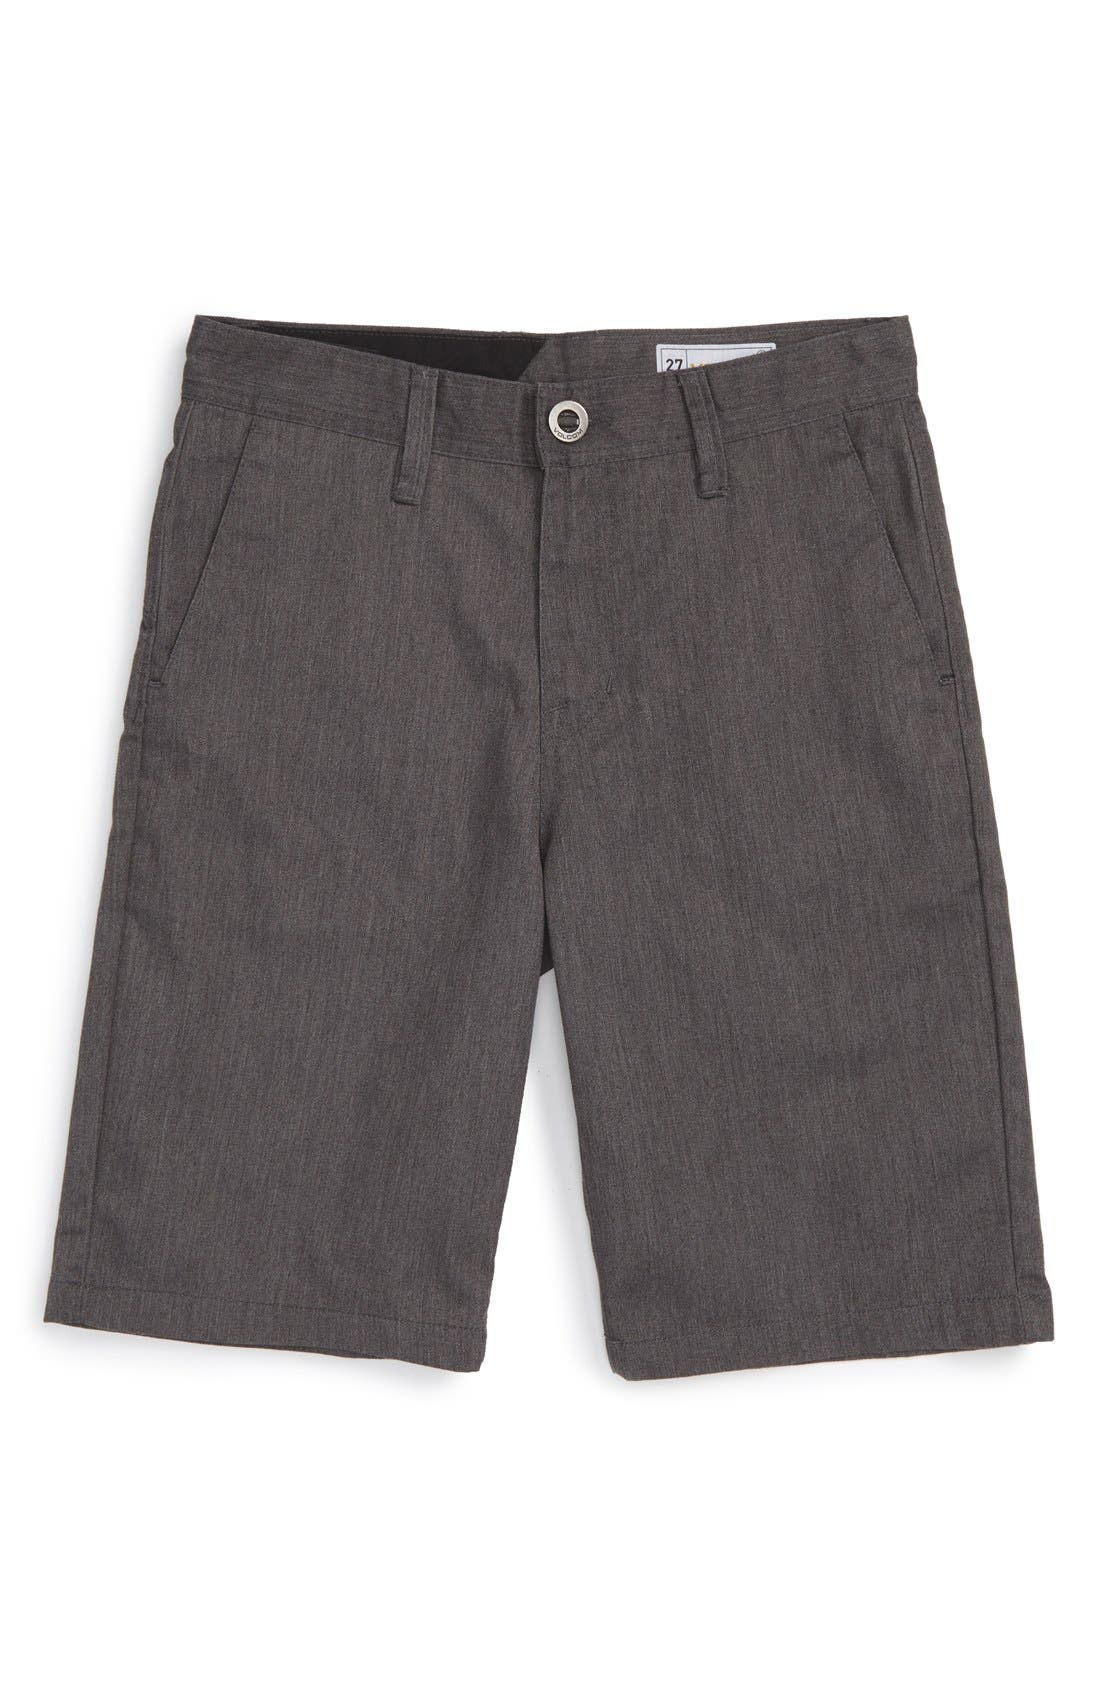 Main Image - Volcom Chino Shorts (Toddler Boys, Little Boys & Big Boys)